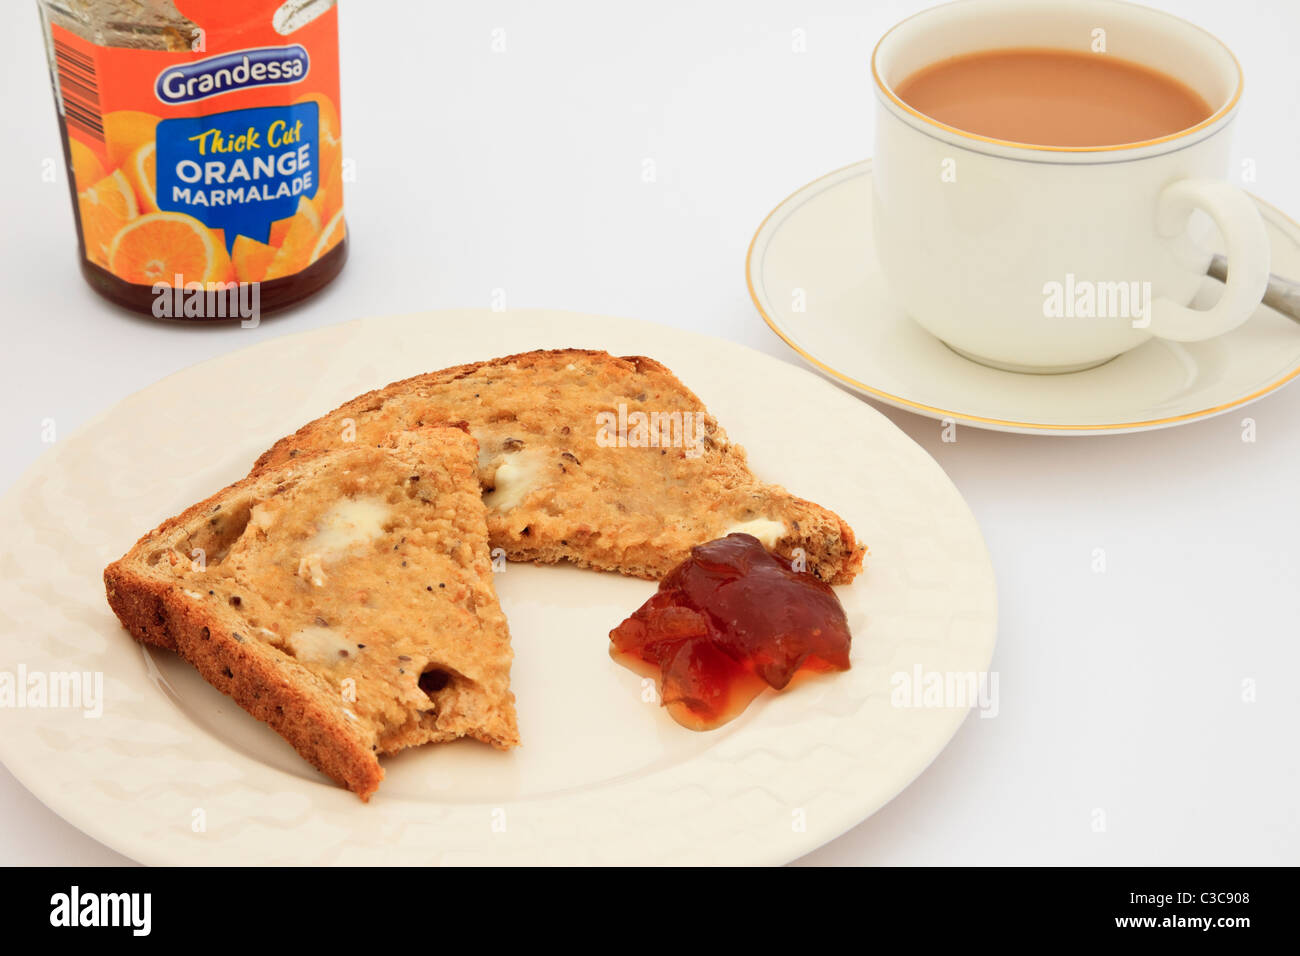 Uk A Slice Of Partly Eaten Brown Bread Toast With Margarine And A Jar Of